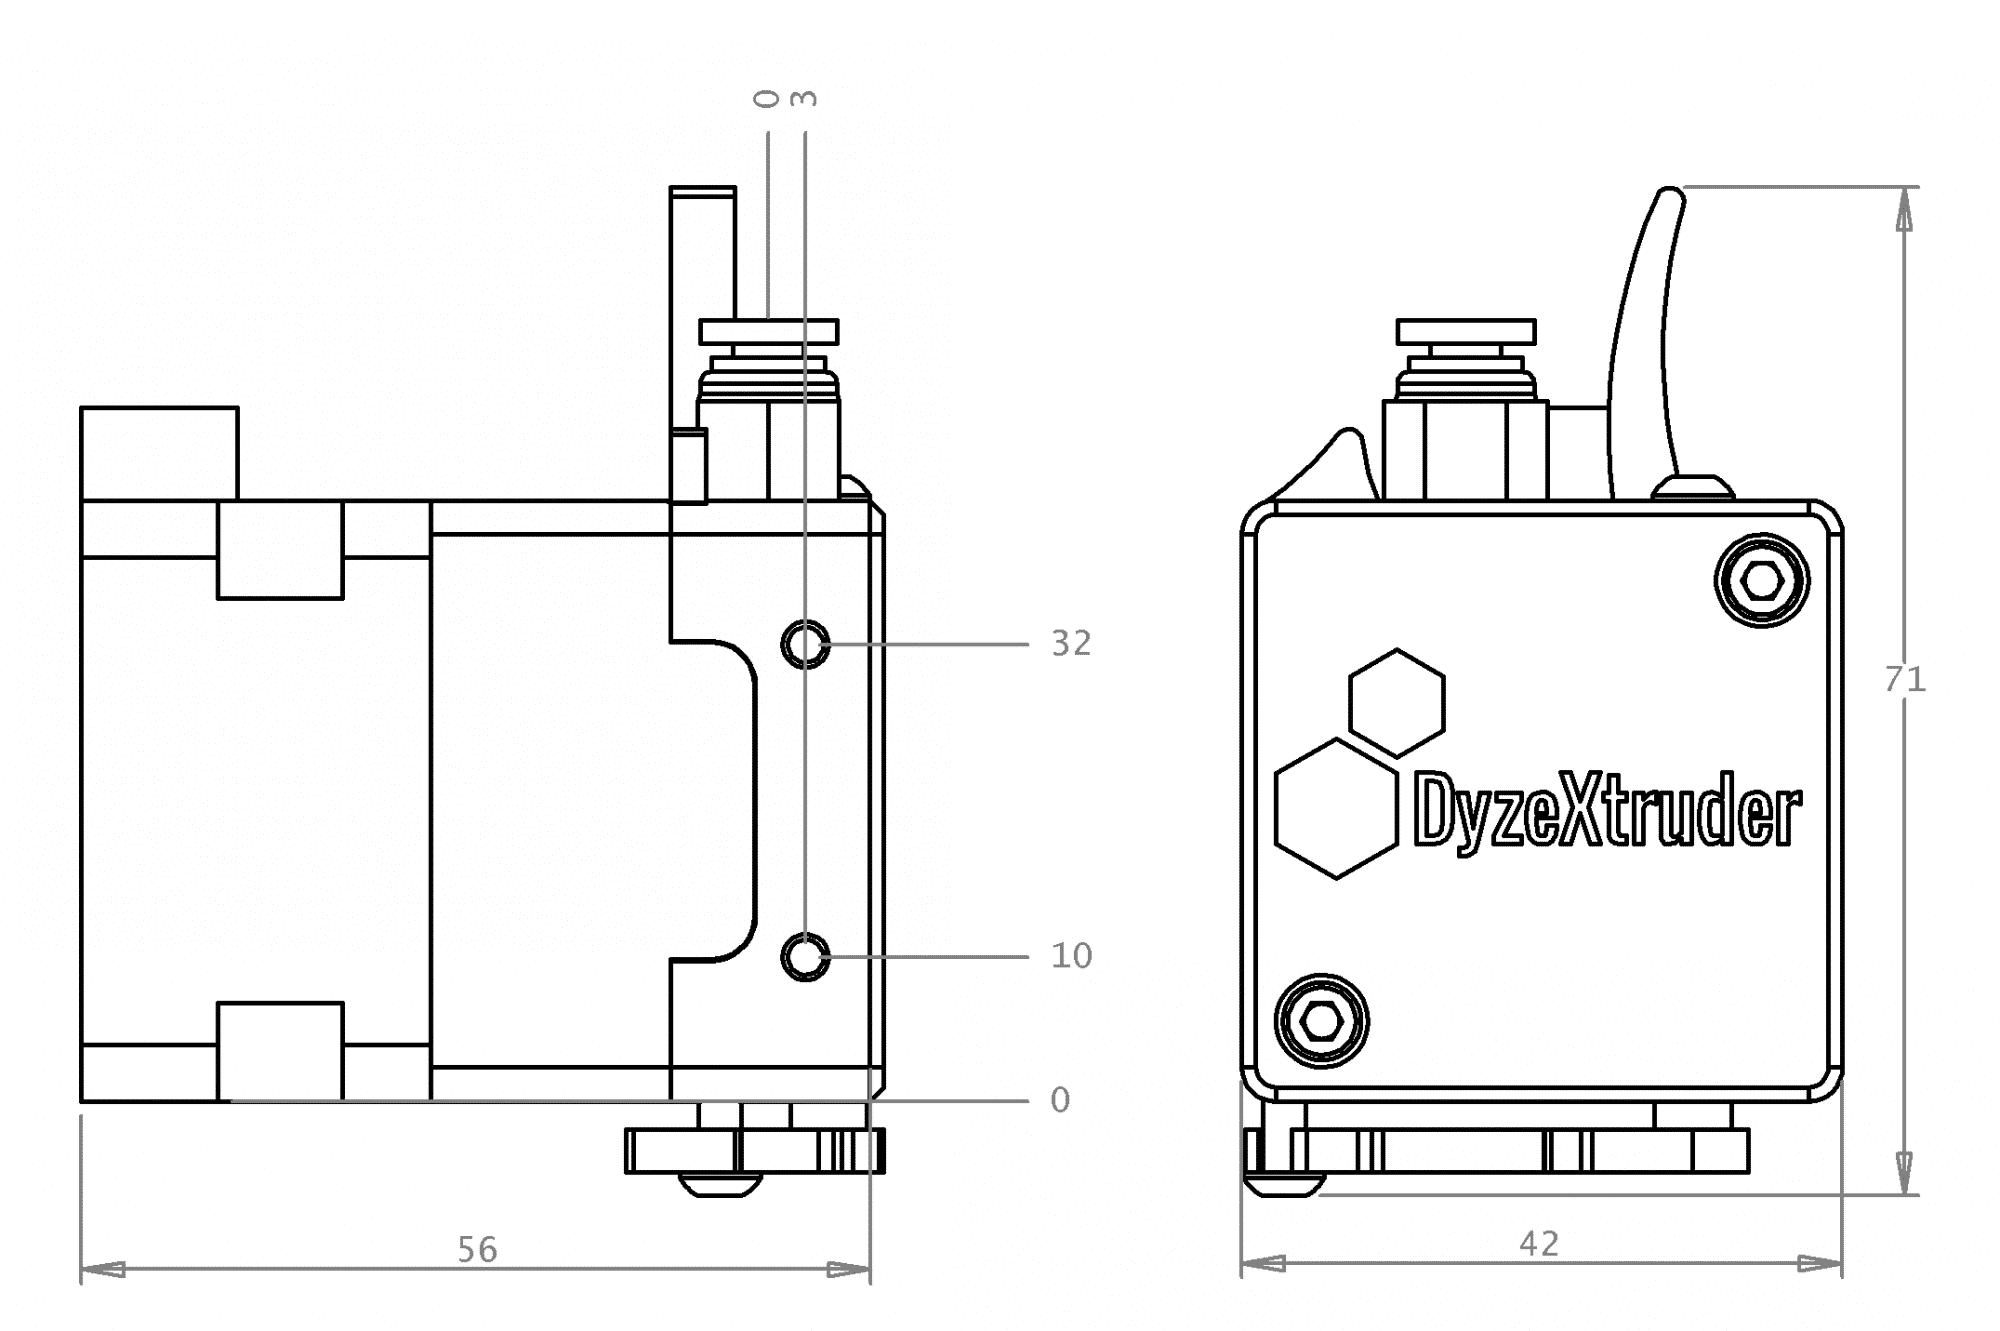 DyzeXtruder GT Dimensions